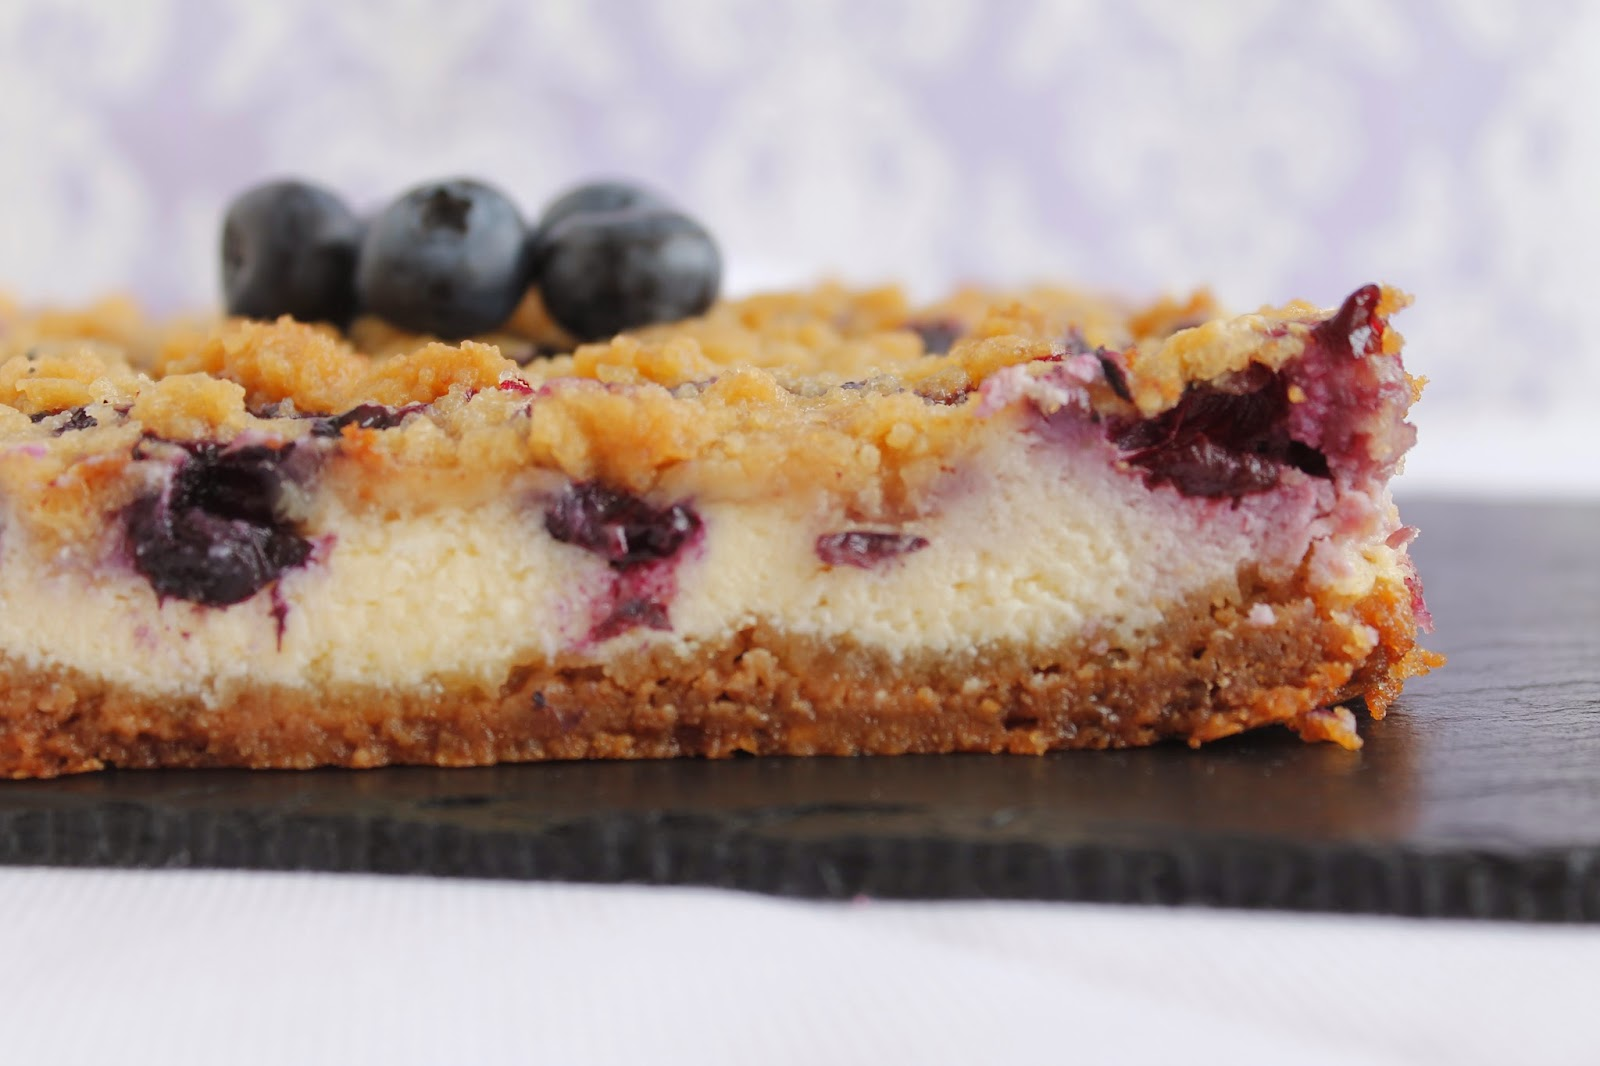 Receta Blueberry cheesecake bars o barritas de tarta de queso con arándanos